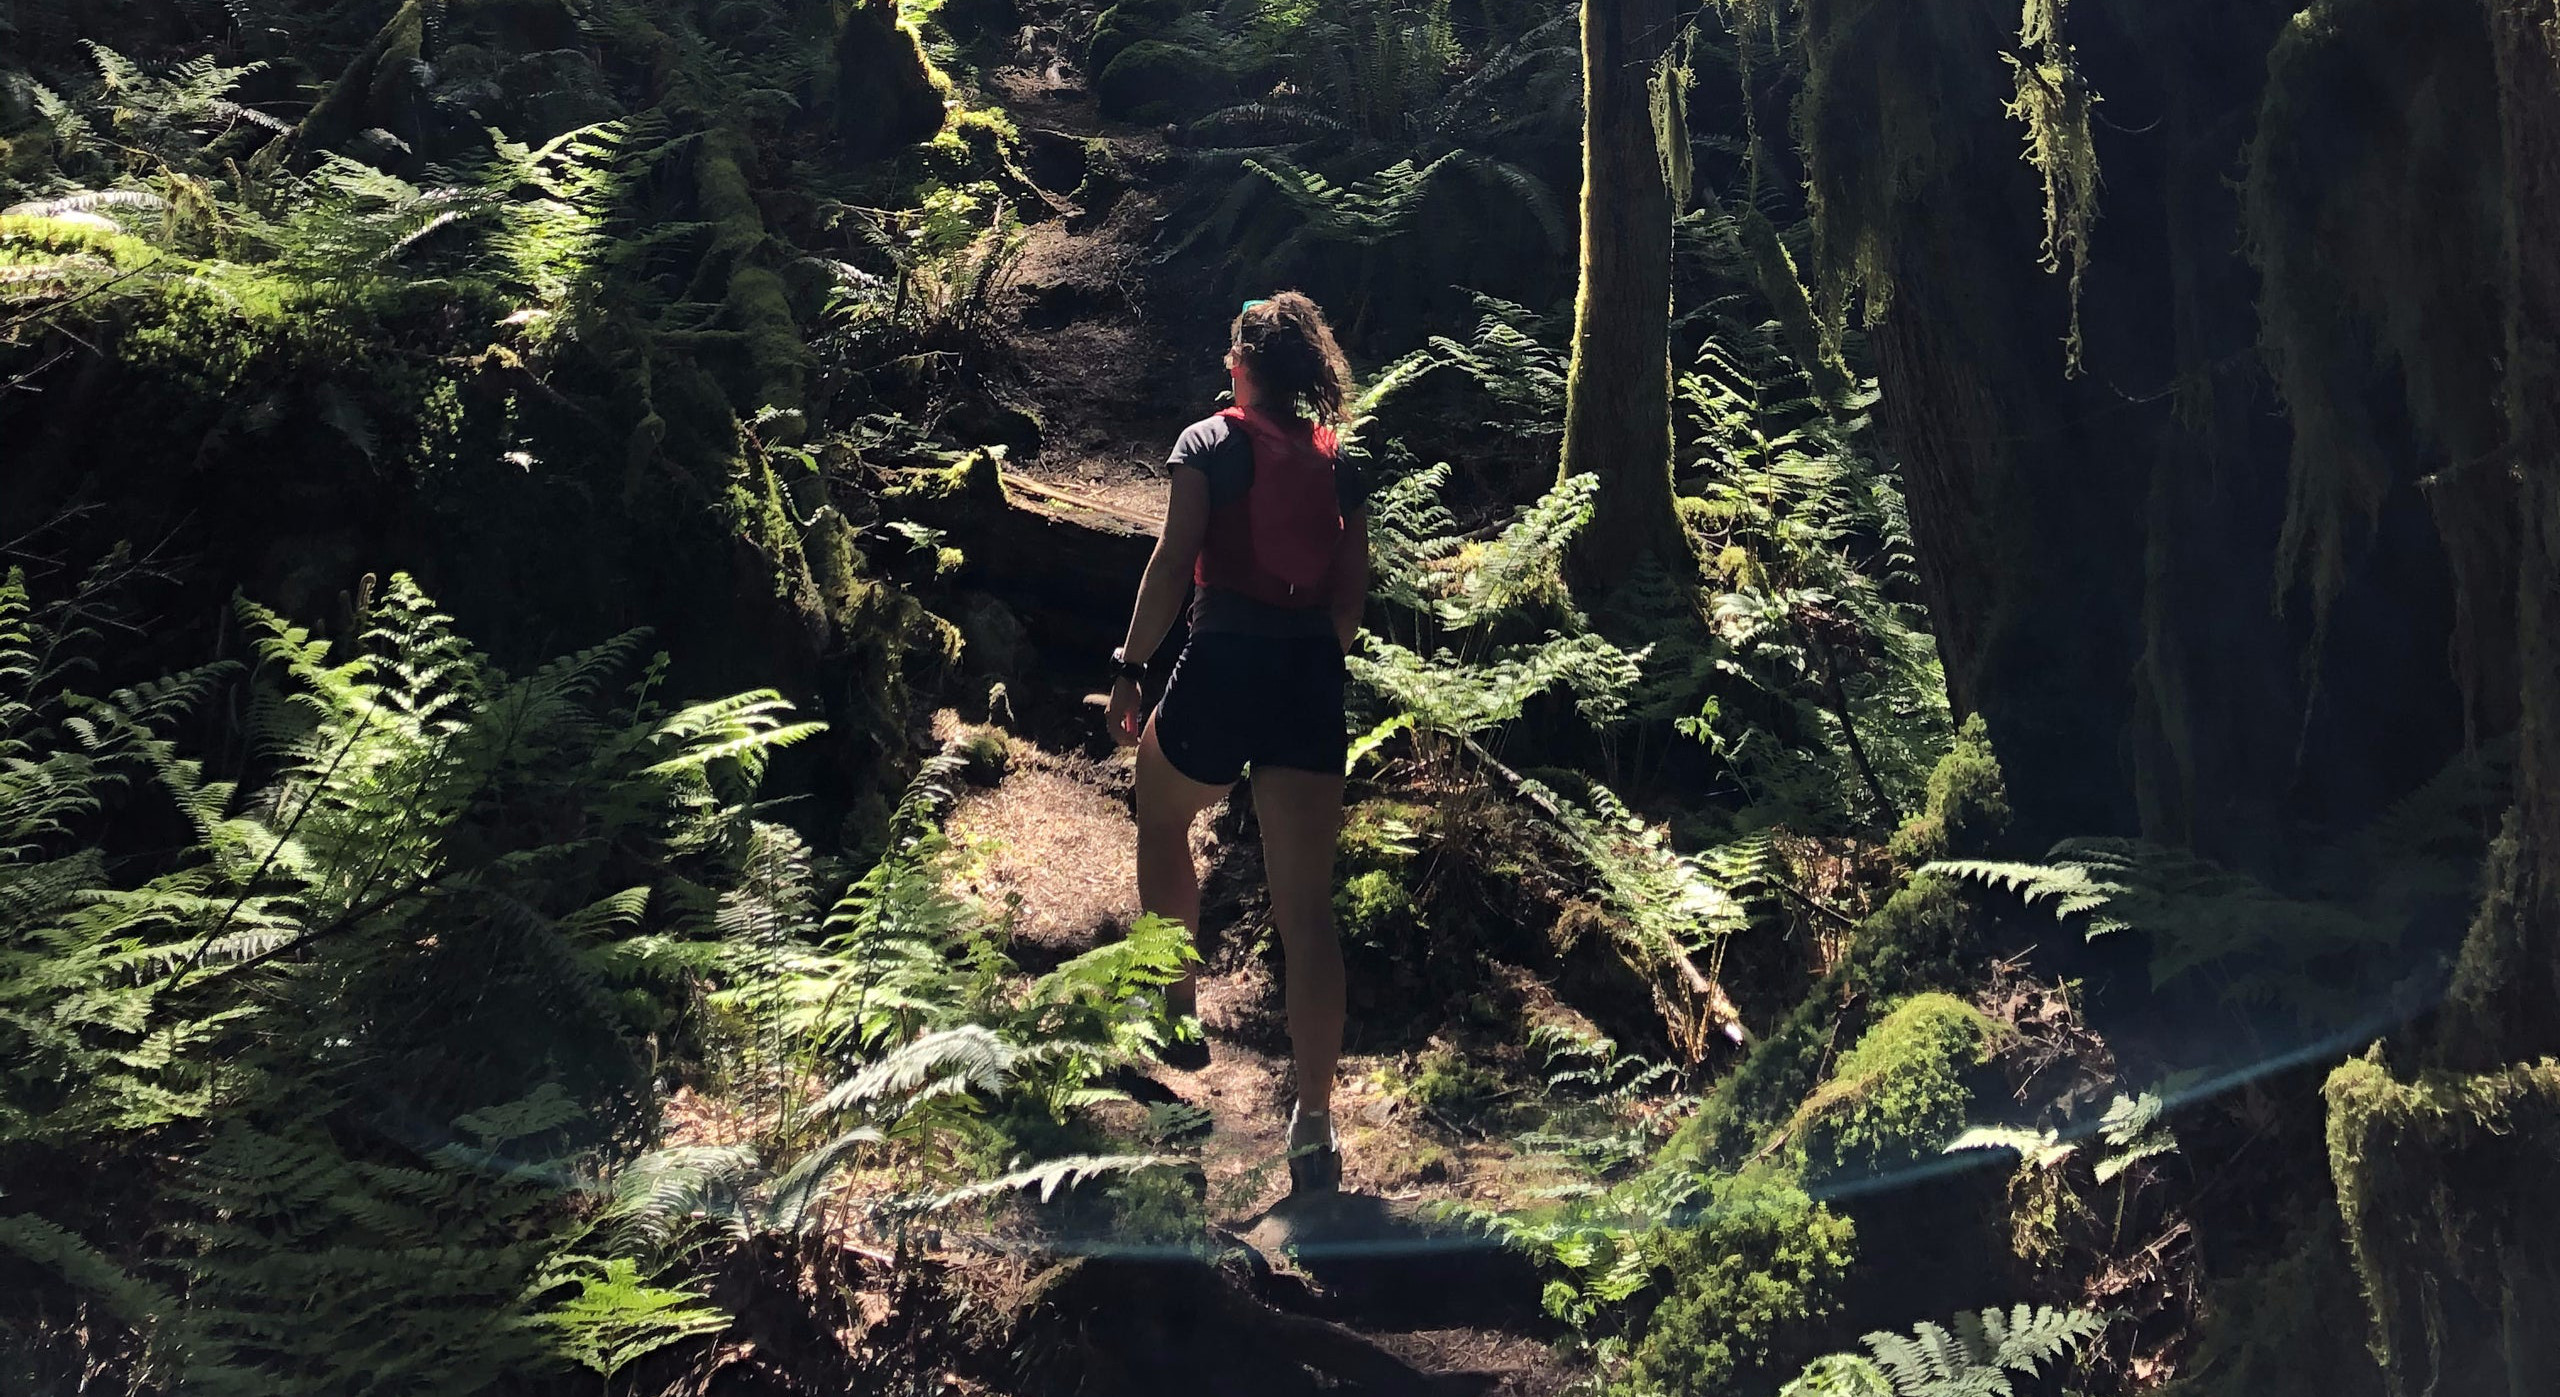 tantalus-wellspring-intro-to-trail-running-july-2021